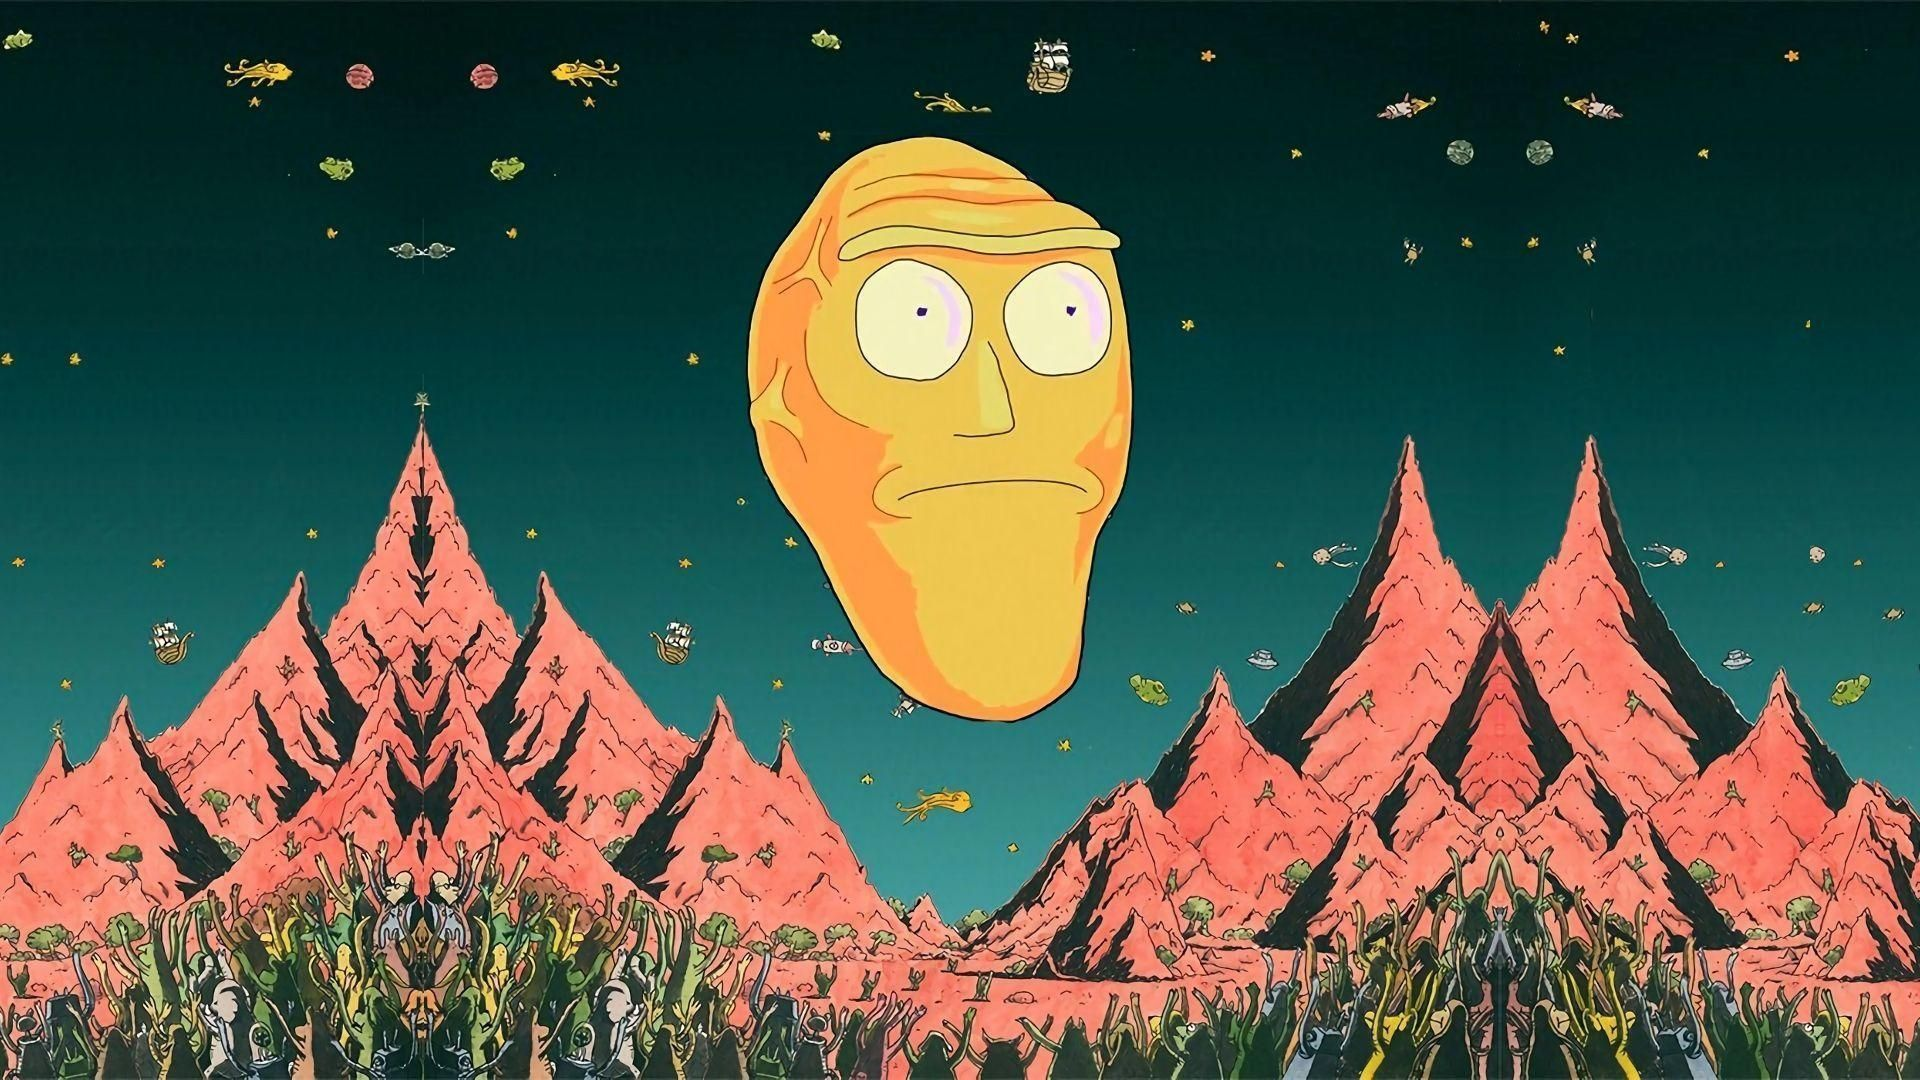 Rick And Morty Wallpapers Wallpaper Cave Inside Awesome Rick And Morty Macbook Wallpaper Hd In 2020 Cartoon Wallpaper Desktop Wallpaper Art Art Wallpaper